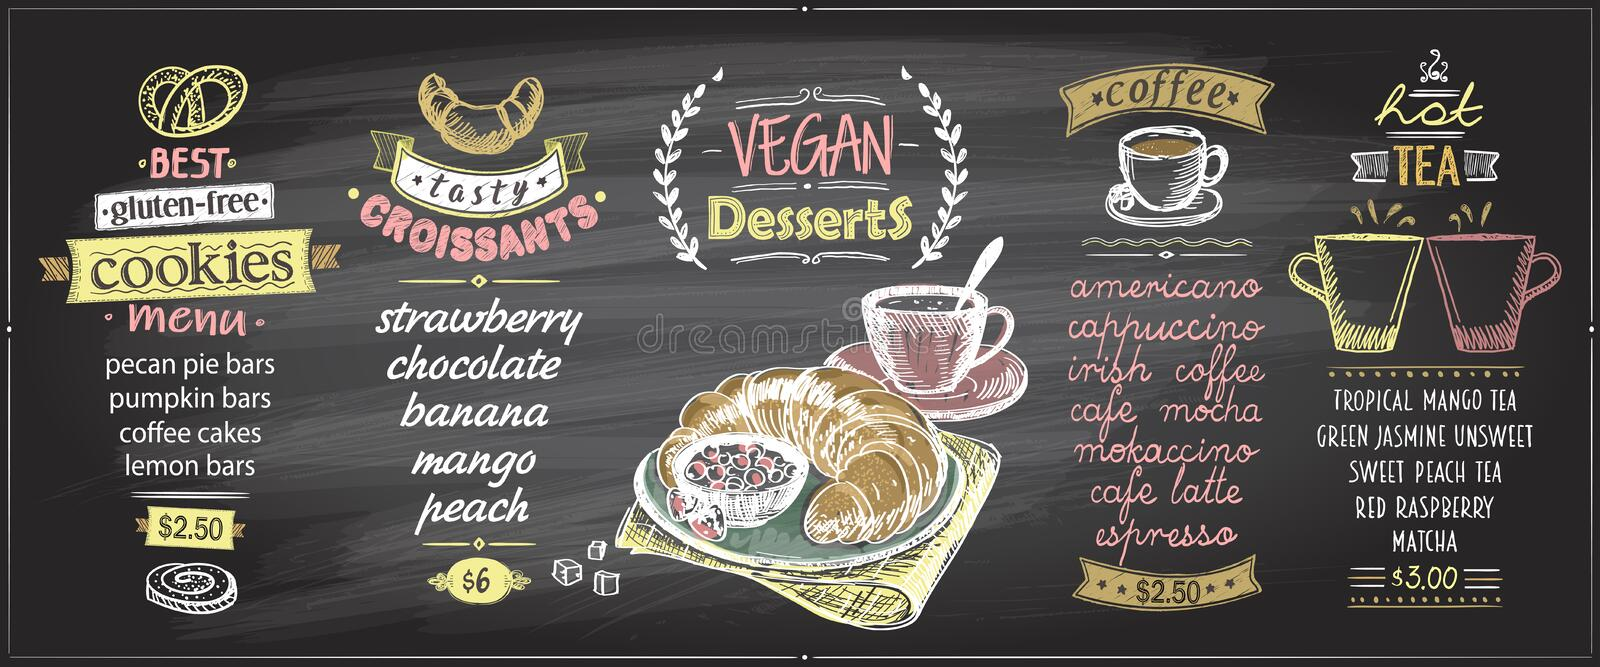 Chalk menu board designs set with sweets and hot drinks. Vegan desserts, gluten free cookies, croissants, coffee and tea vector illustration